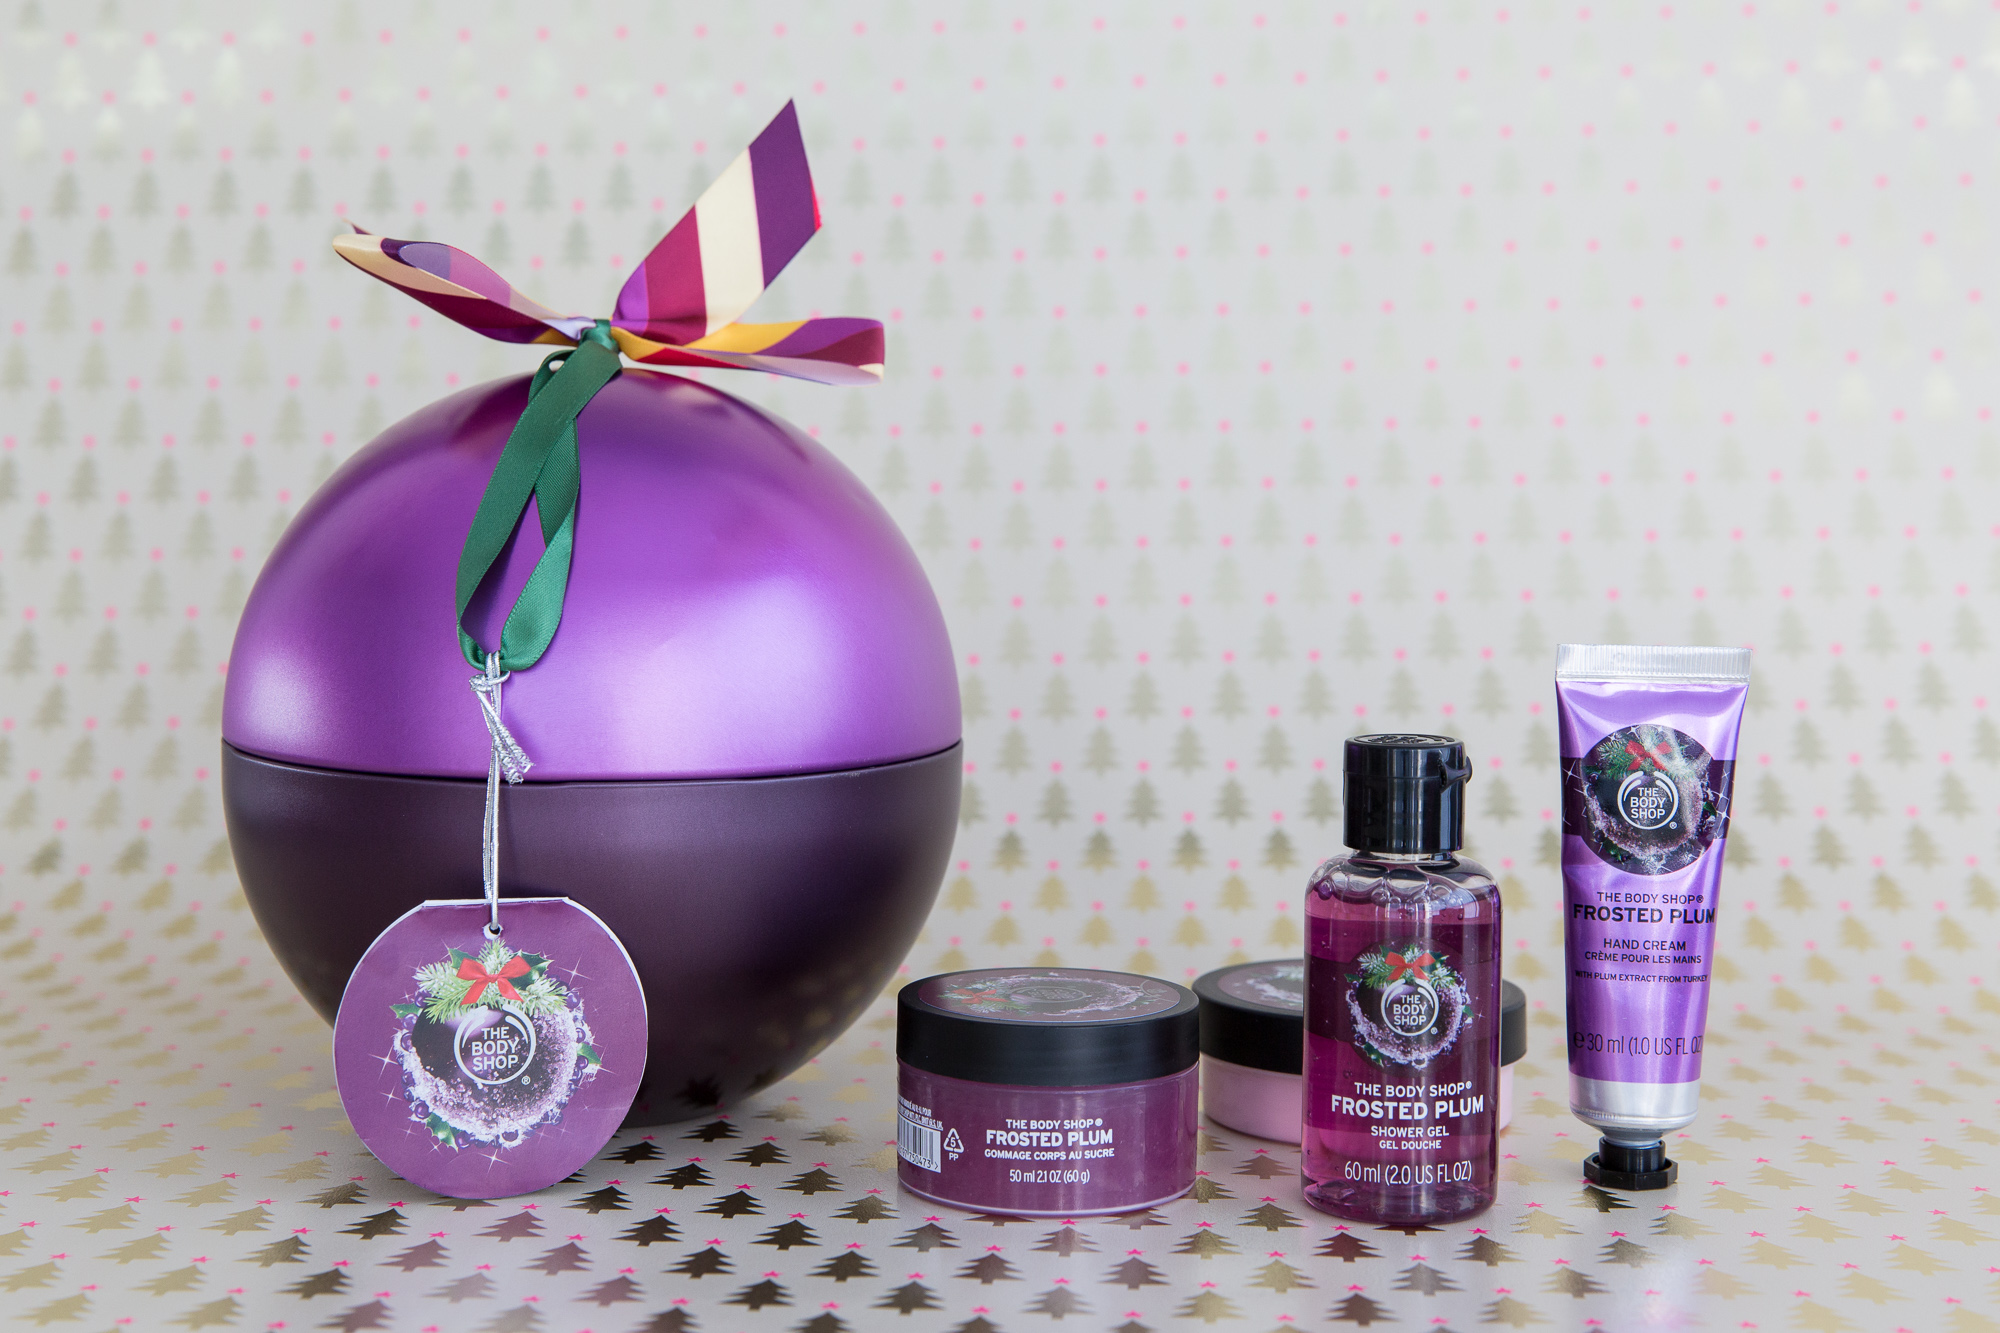 THE BODY SHOP Frosted Plum Hand Cream 30 ml Depop